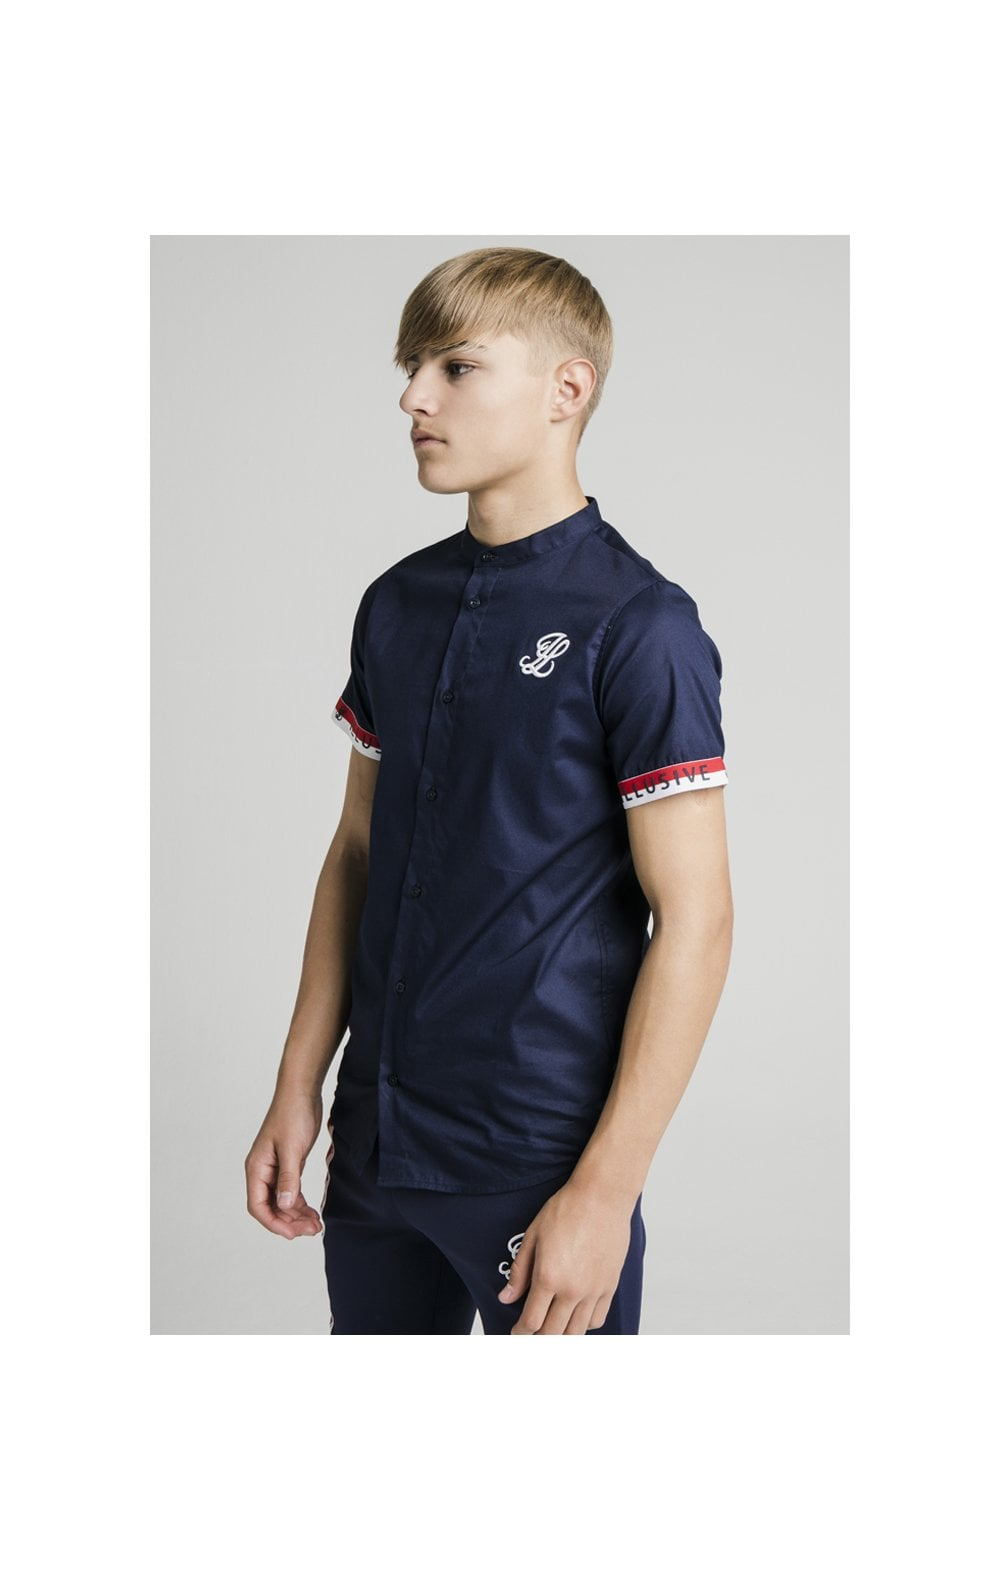 Illusive London S/S Tech Shirt - Navy (1)